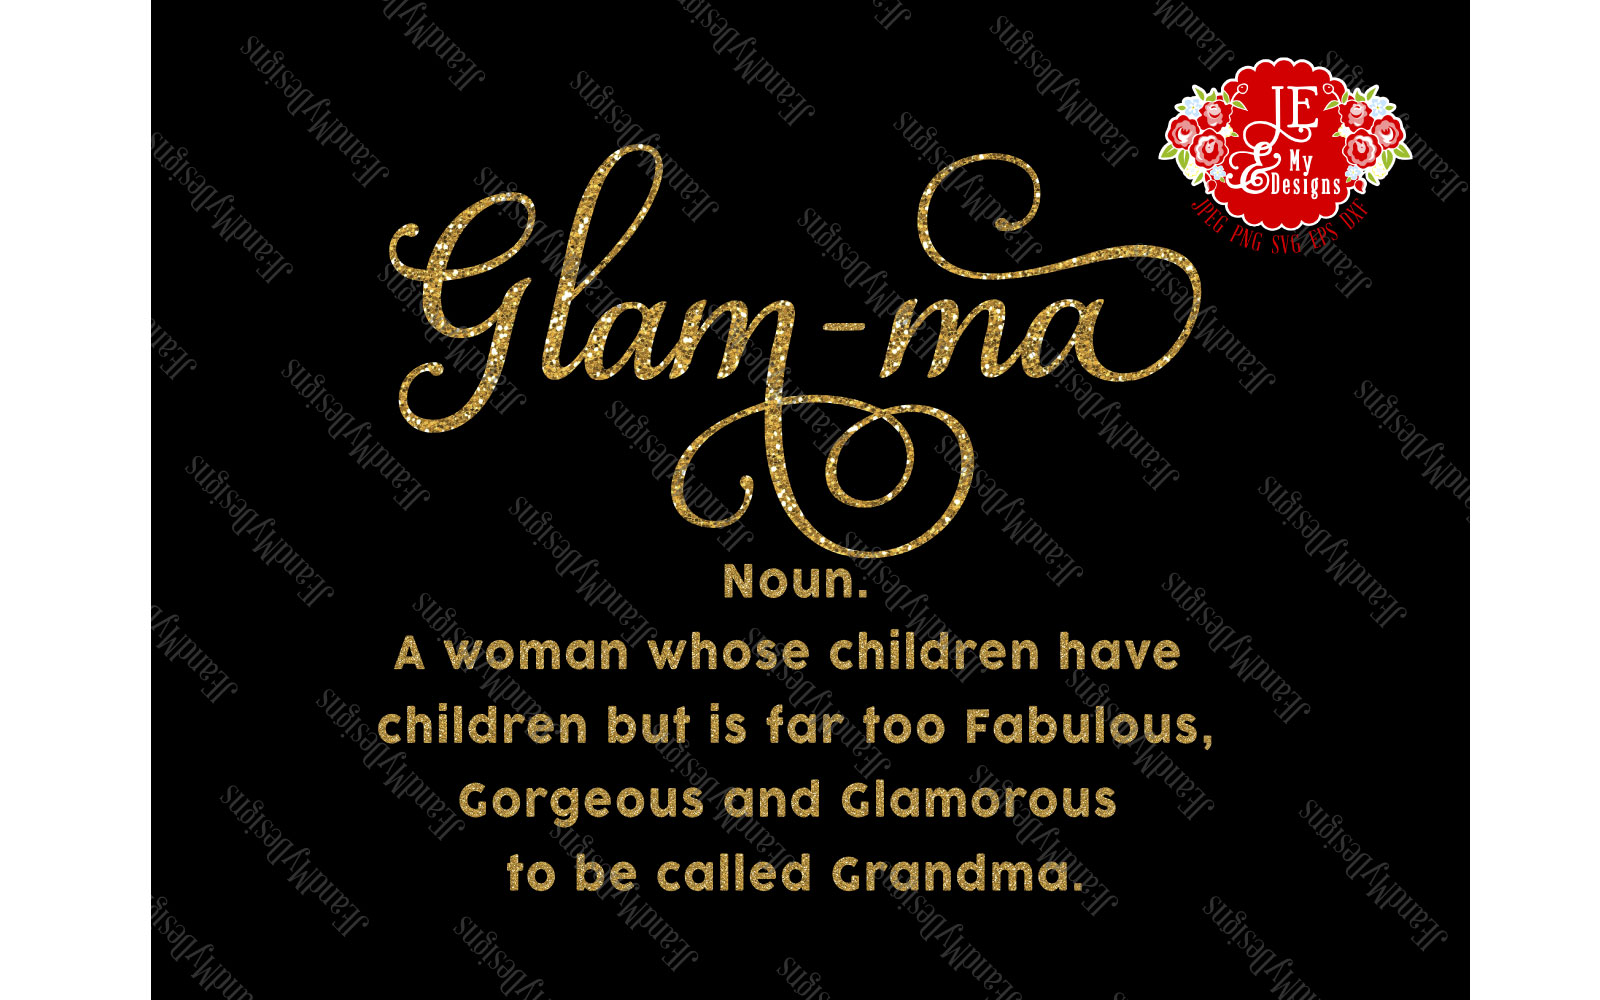 Glam-ma SVG, JPEG, PNG, EPS, DXF example image 5